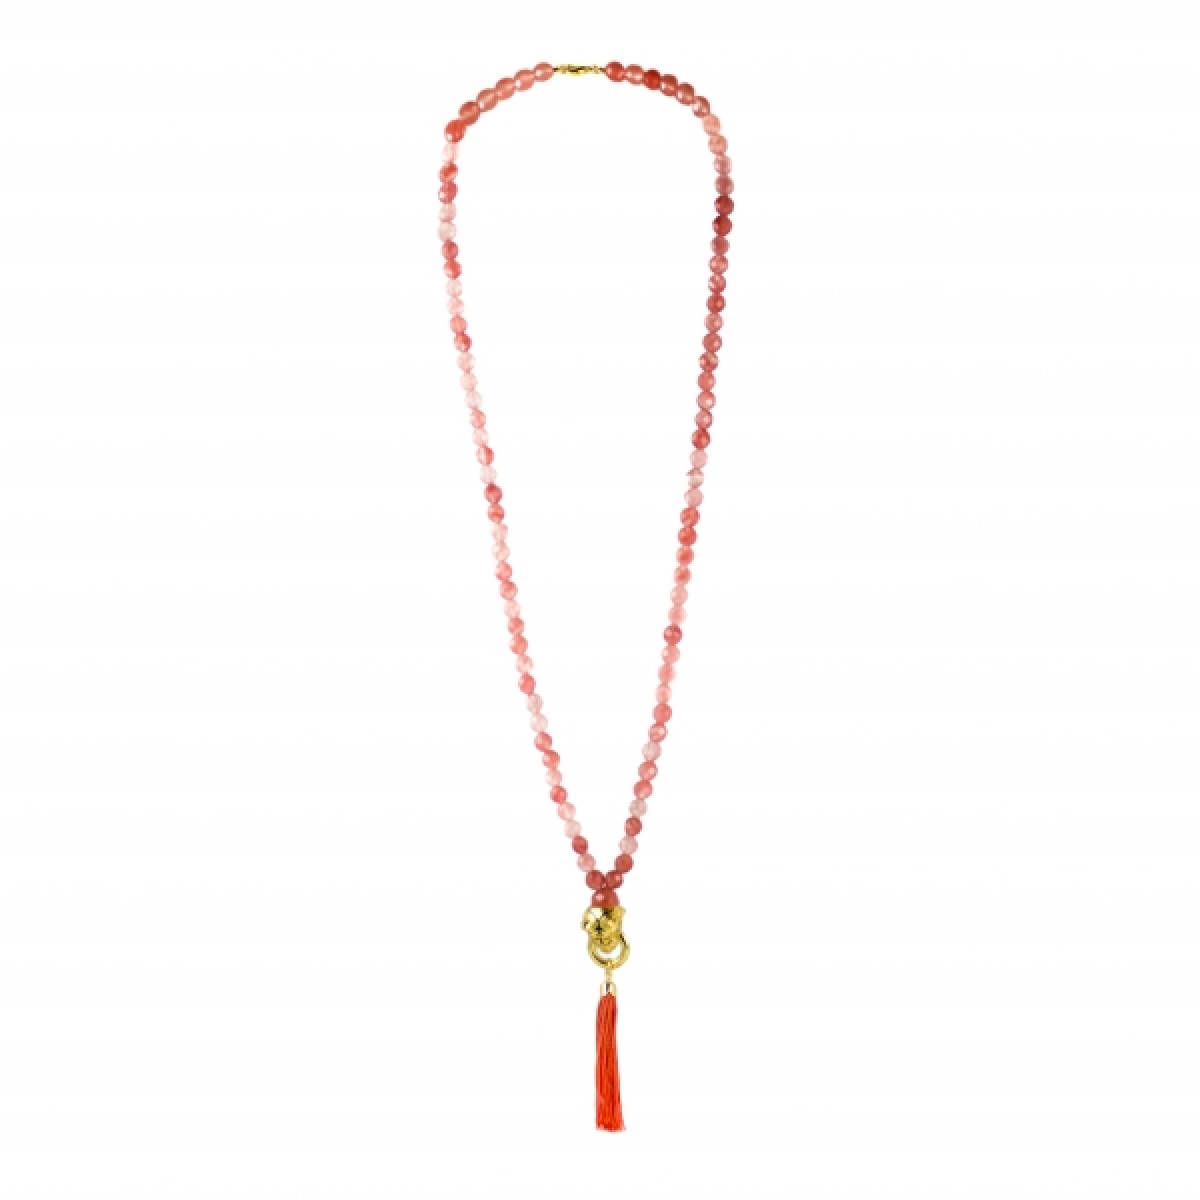 TIGER TASSEL CHERRY QUARTZ NECKLACE